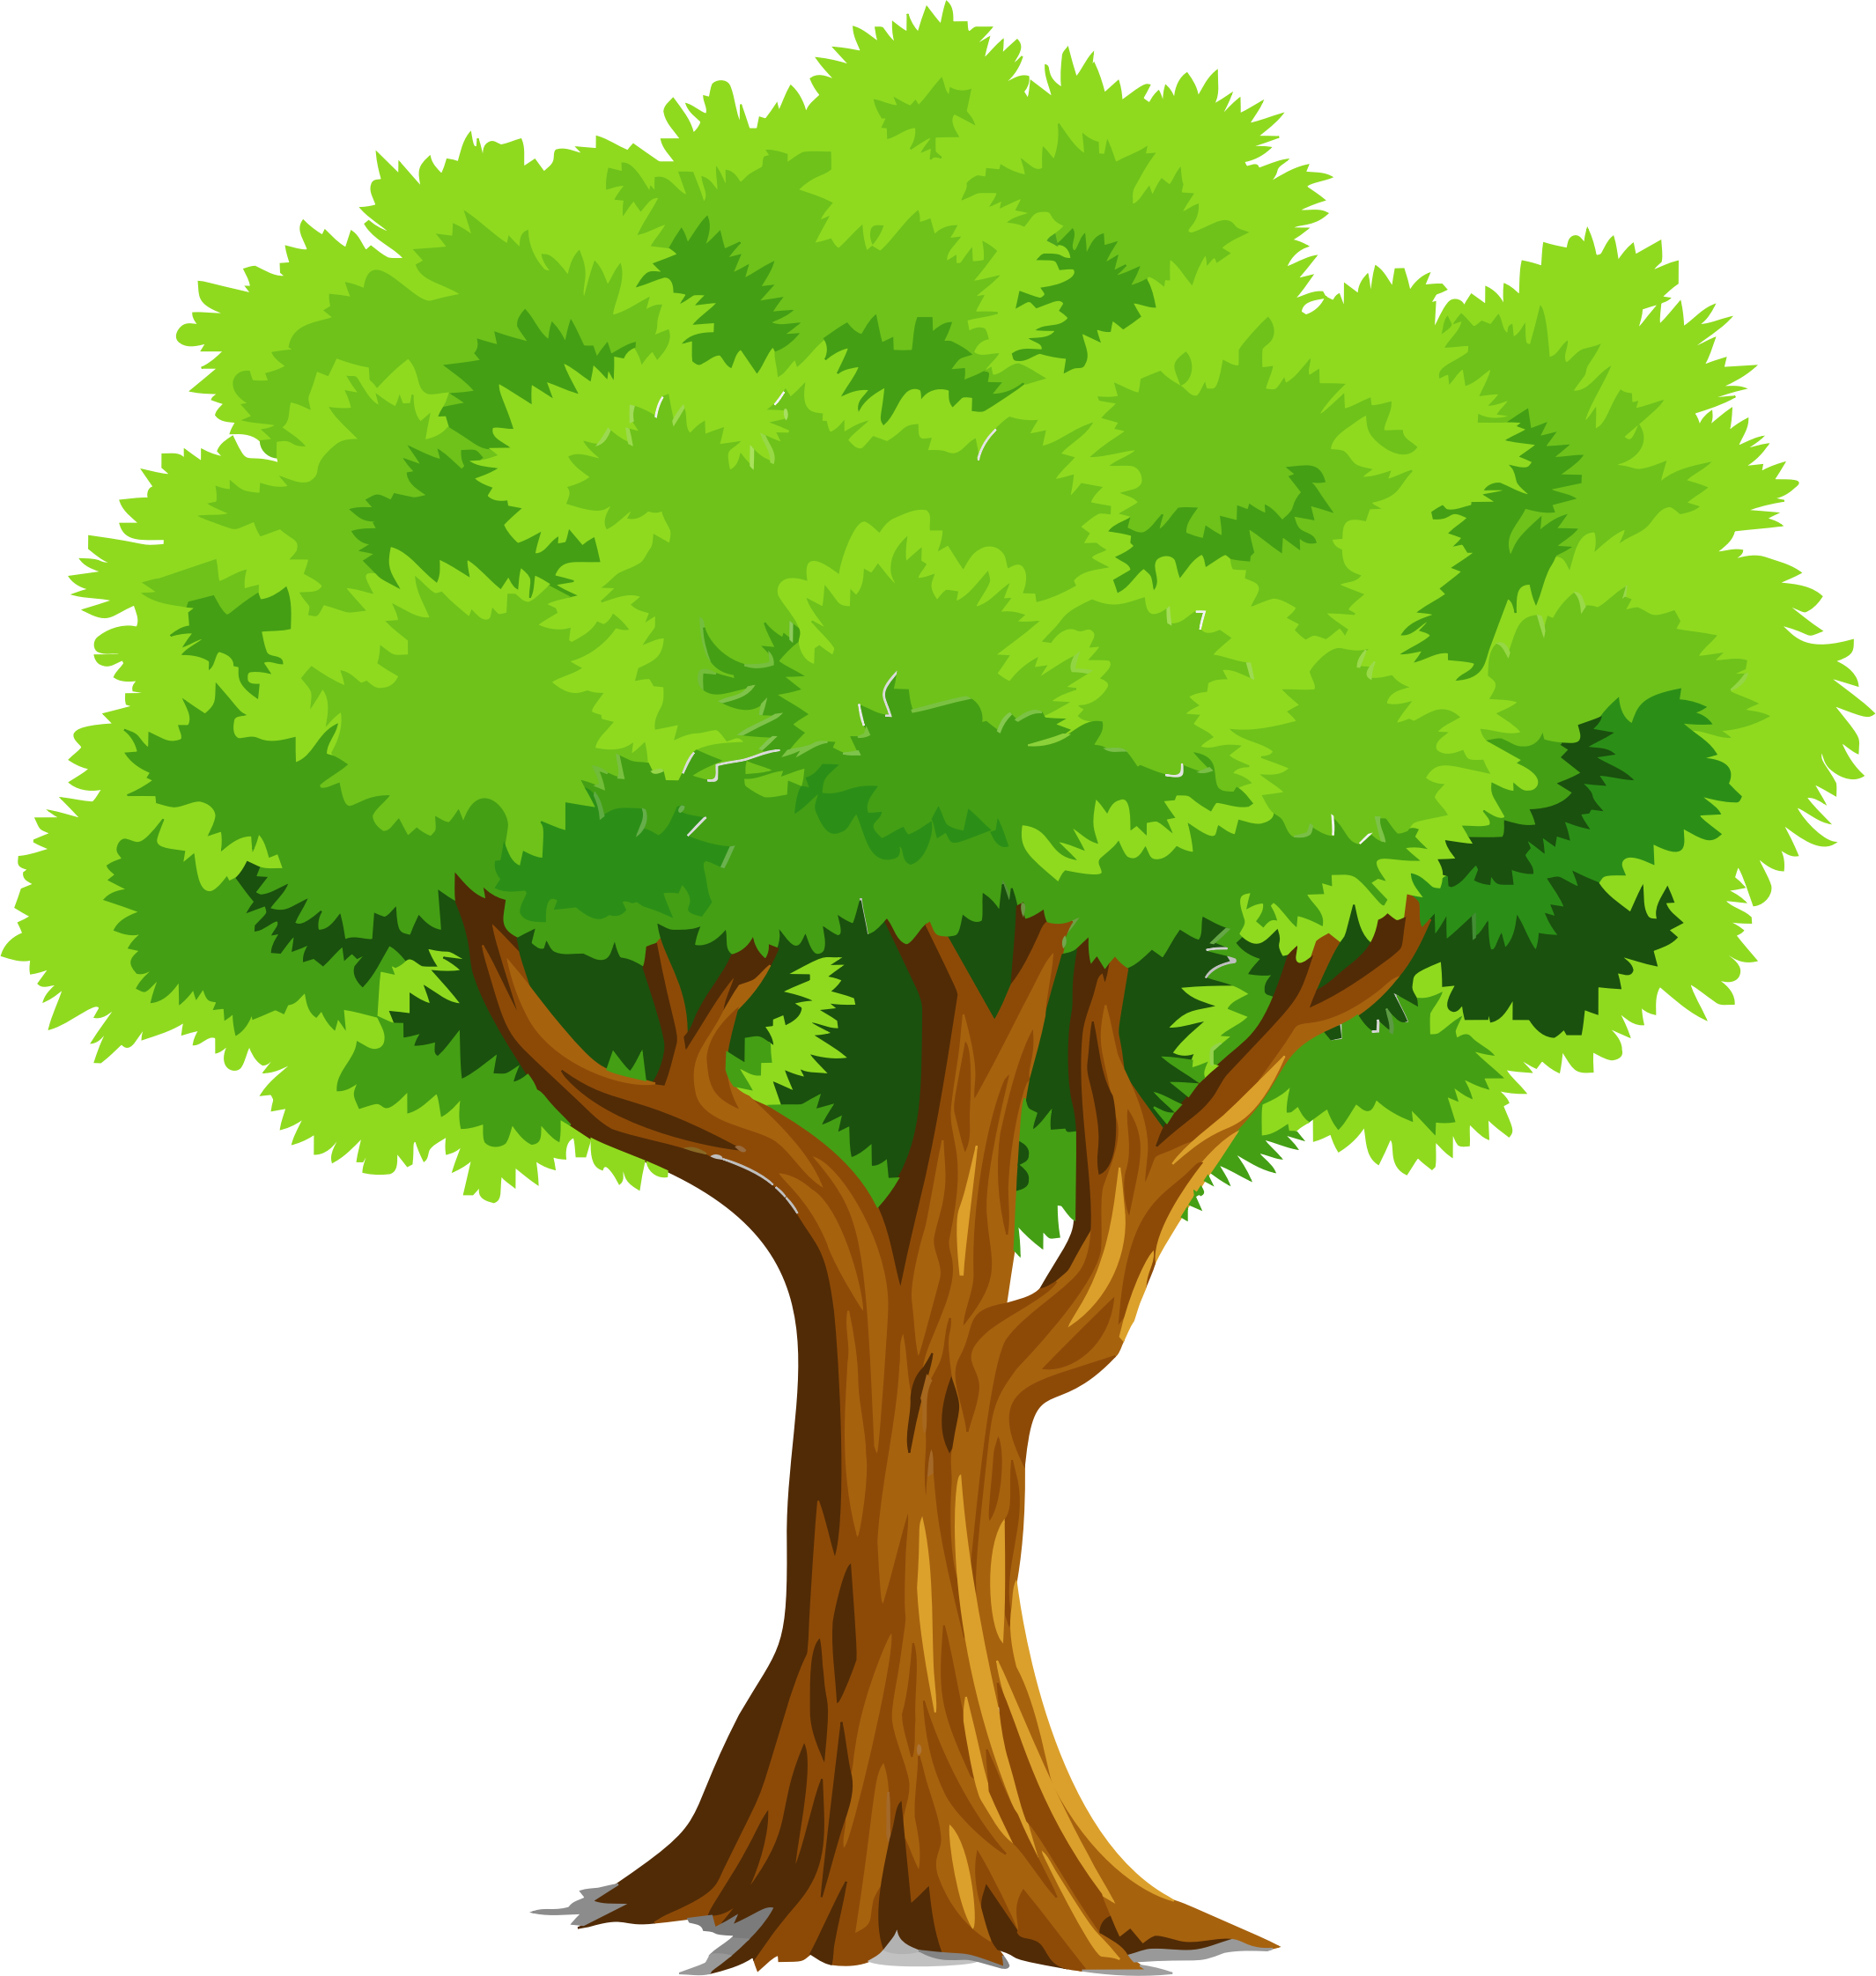 Www clipart tree image freeuse library Colorful Natural Tree by GDJ | cc0 | Tree clipart, Vector ... image freeuse library